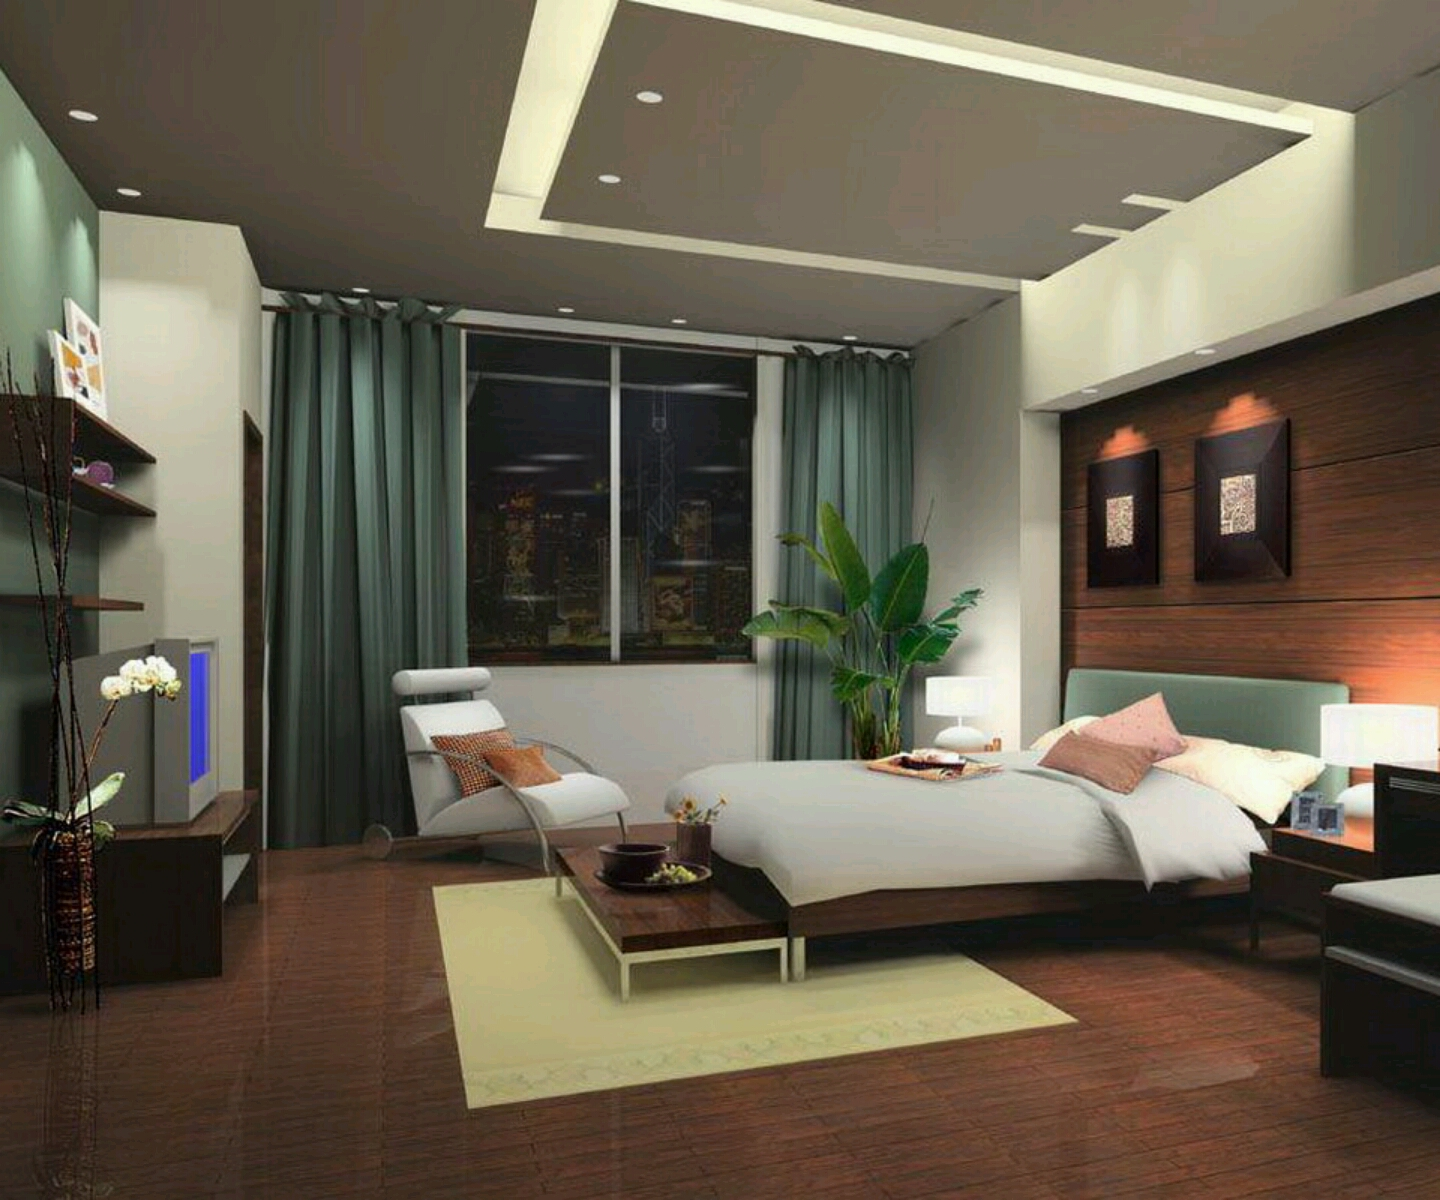 New home designs latest modern bedrooms designs best ideas for Bed design ideas